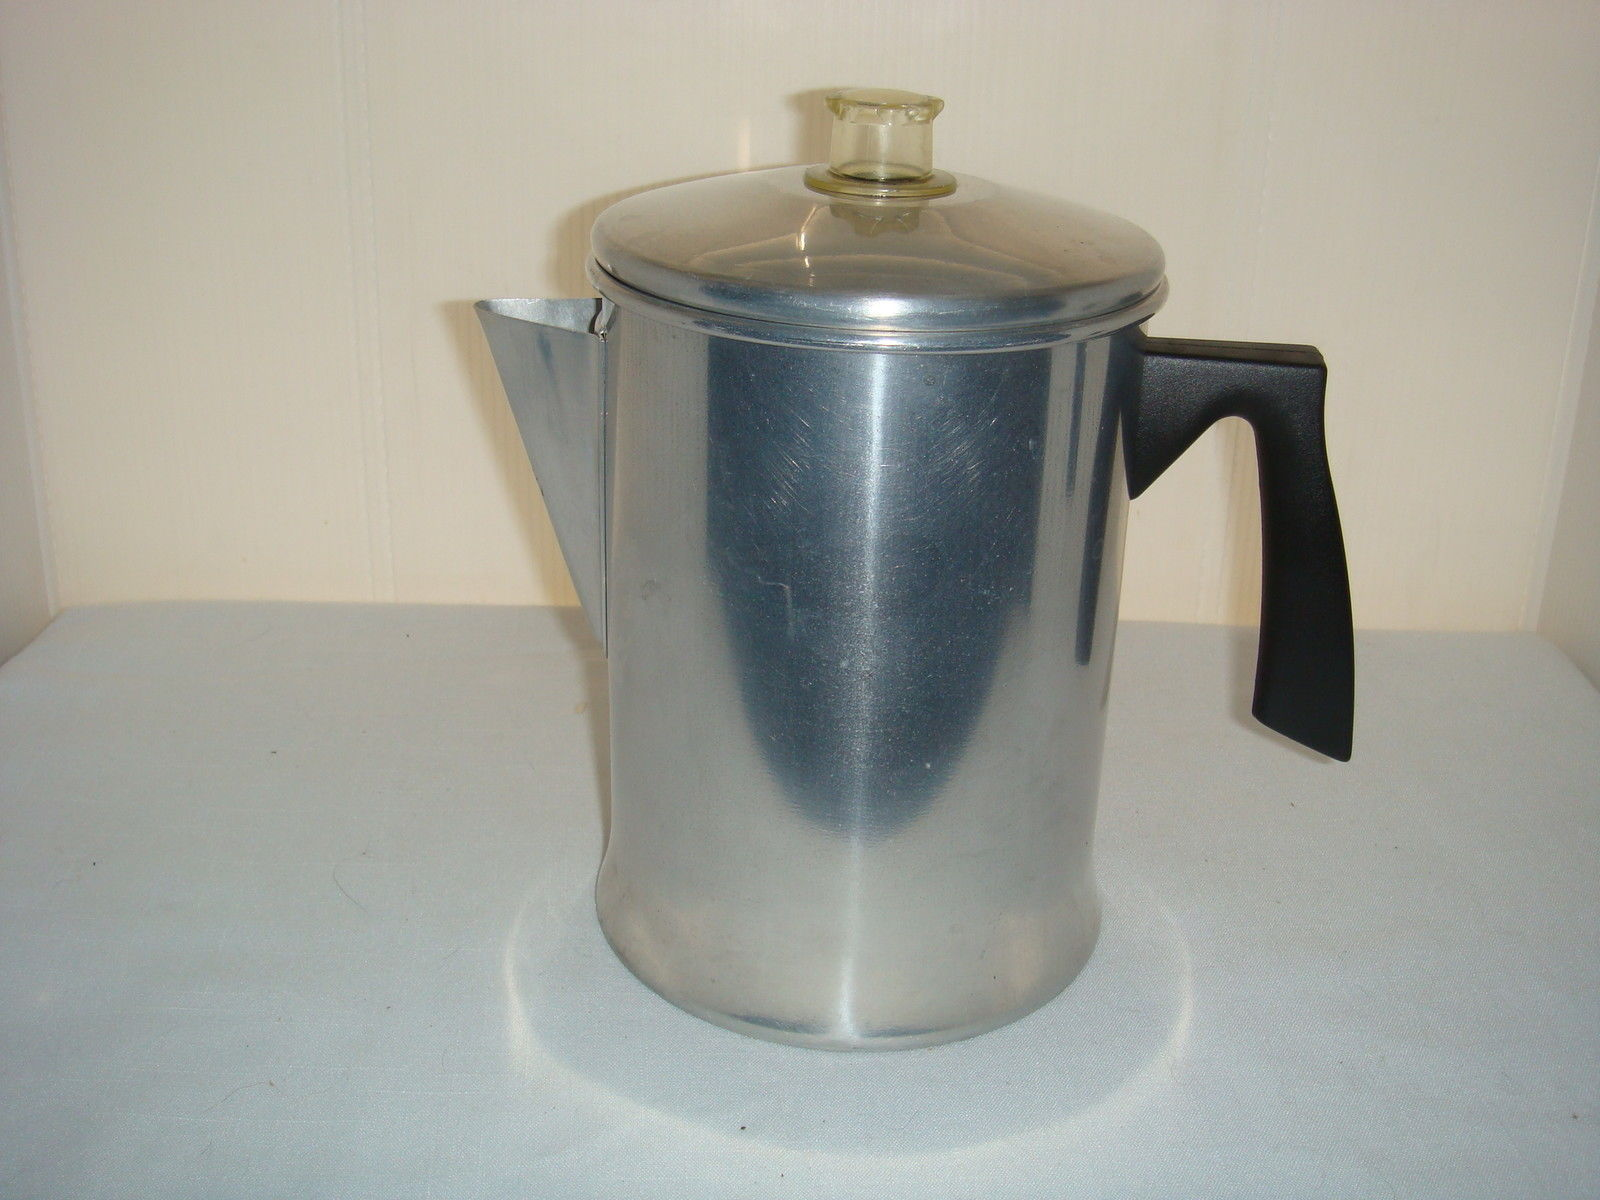 Fullsize Of Camping Coffee Percolator